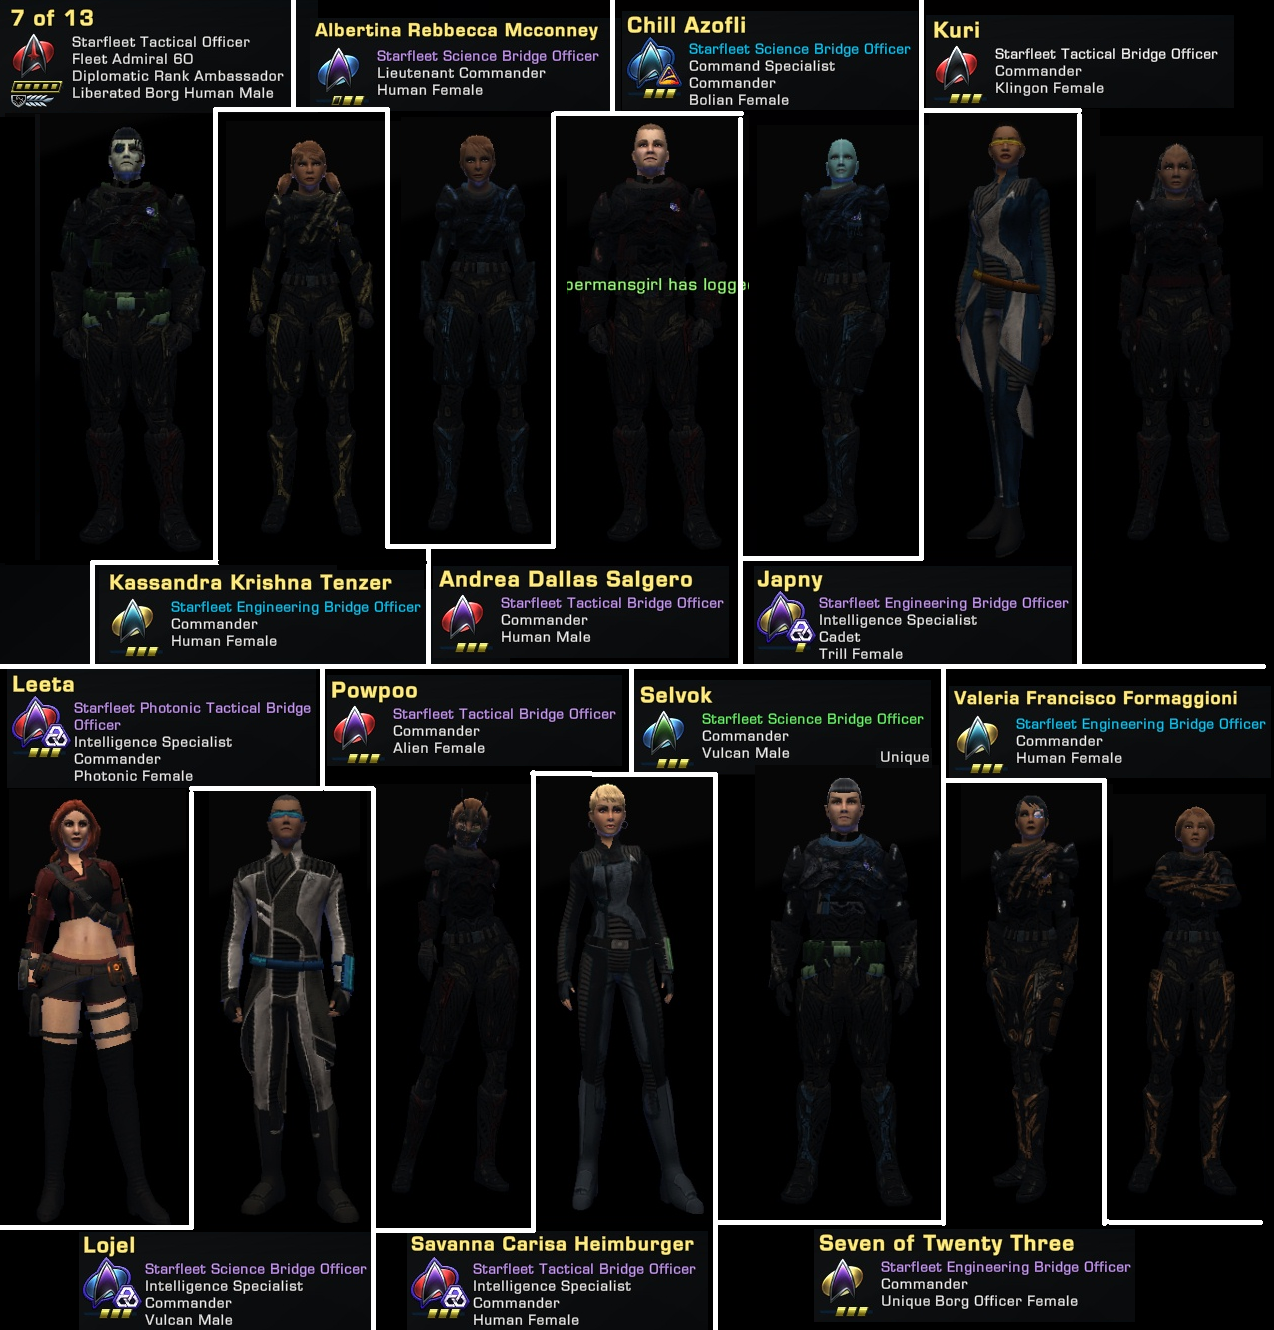 7_of_13_crew_by_marhawkman-dao2y66.png